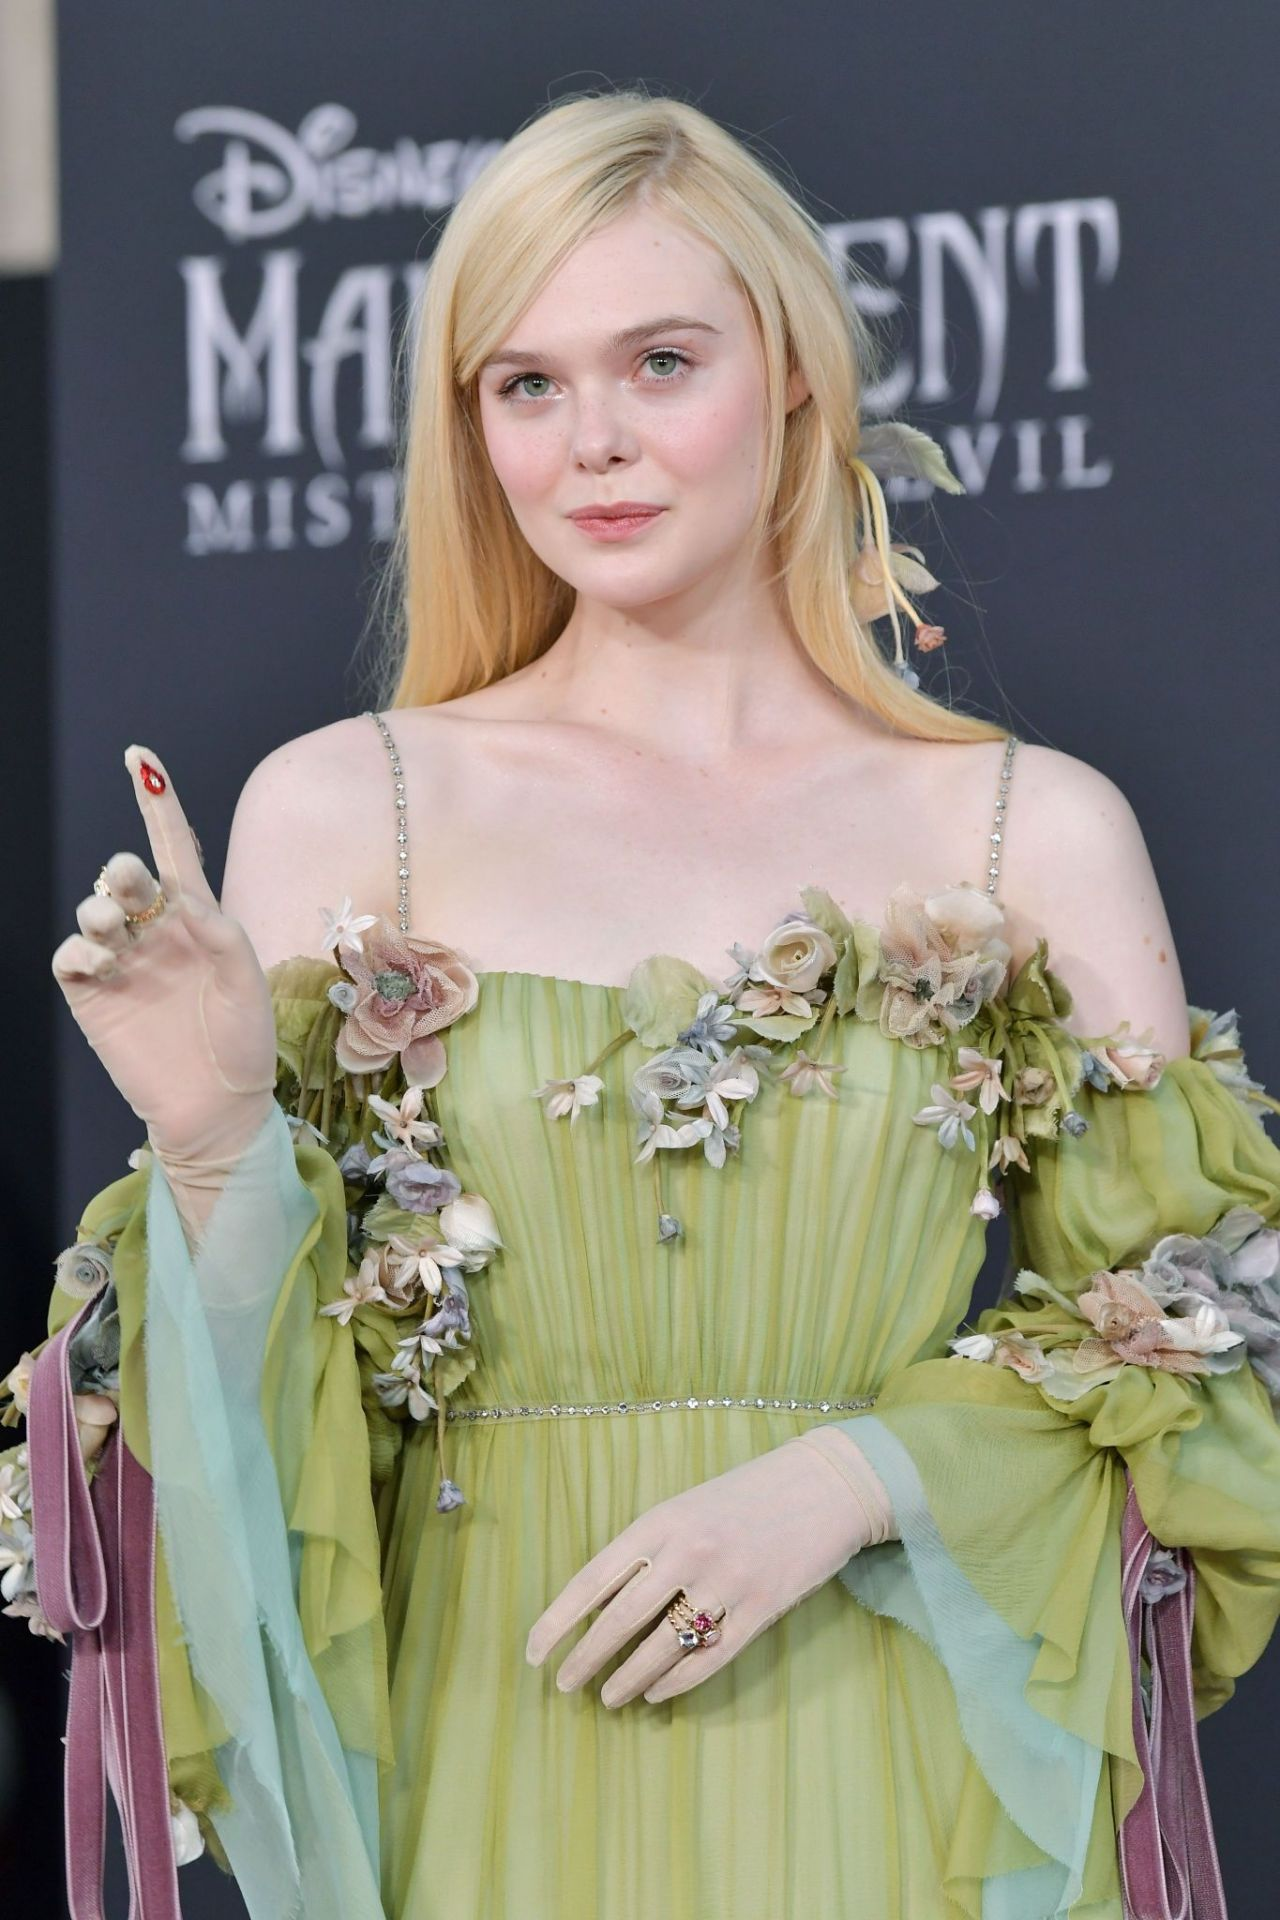 Elle Fanning Maleficent Mistress Of Evil Premiere In La